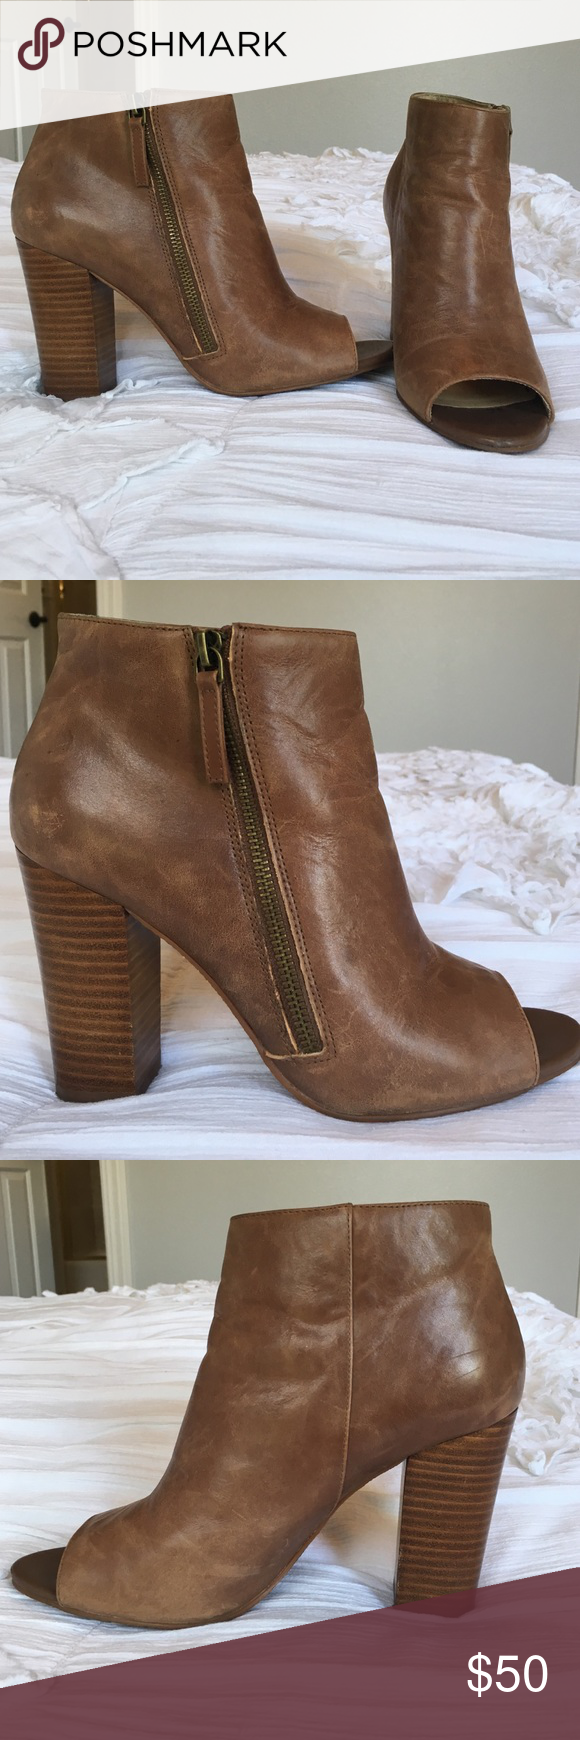 Levity 'Alana' leather peep toe bootie Levity 'Alana' leather peep toe bootie, size 9.5, worn once! levity Shoes Ankle Boots & Booties